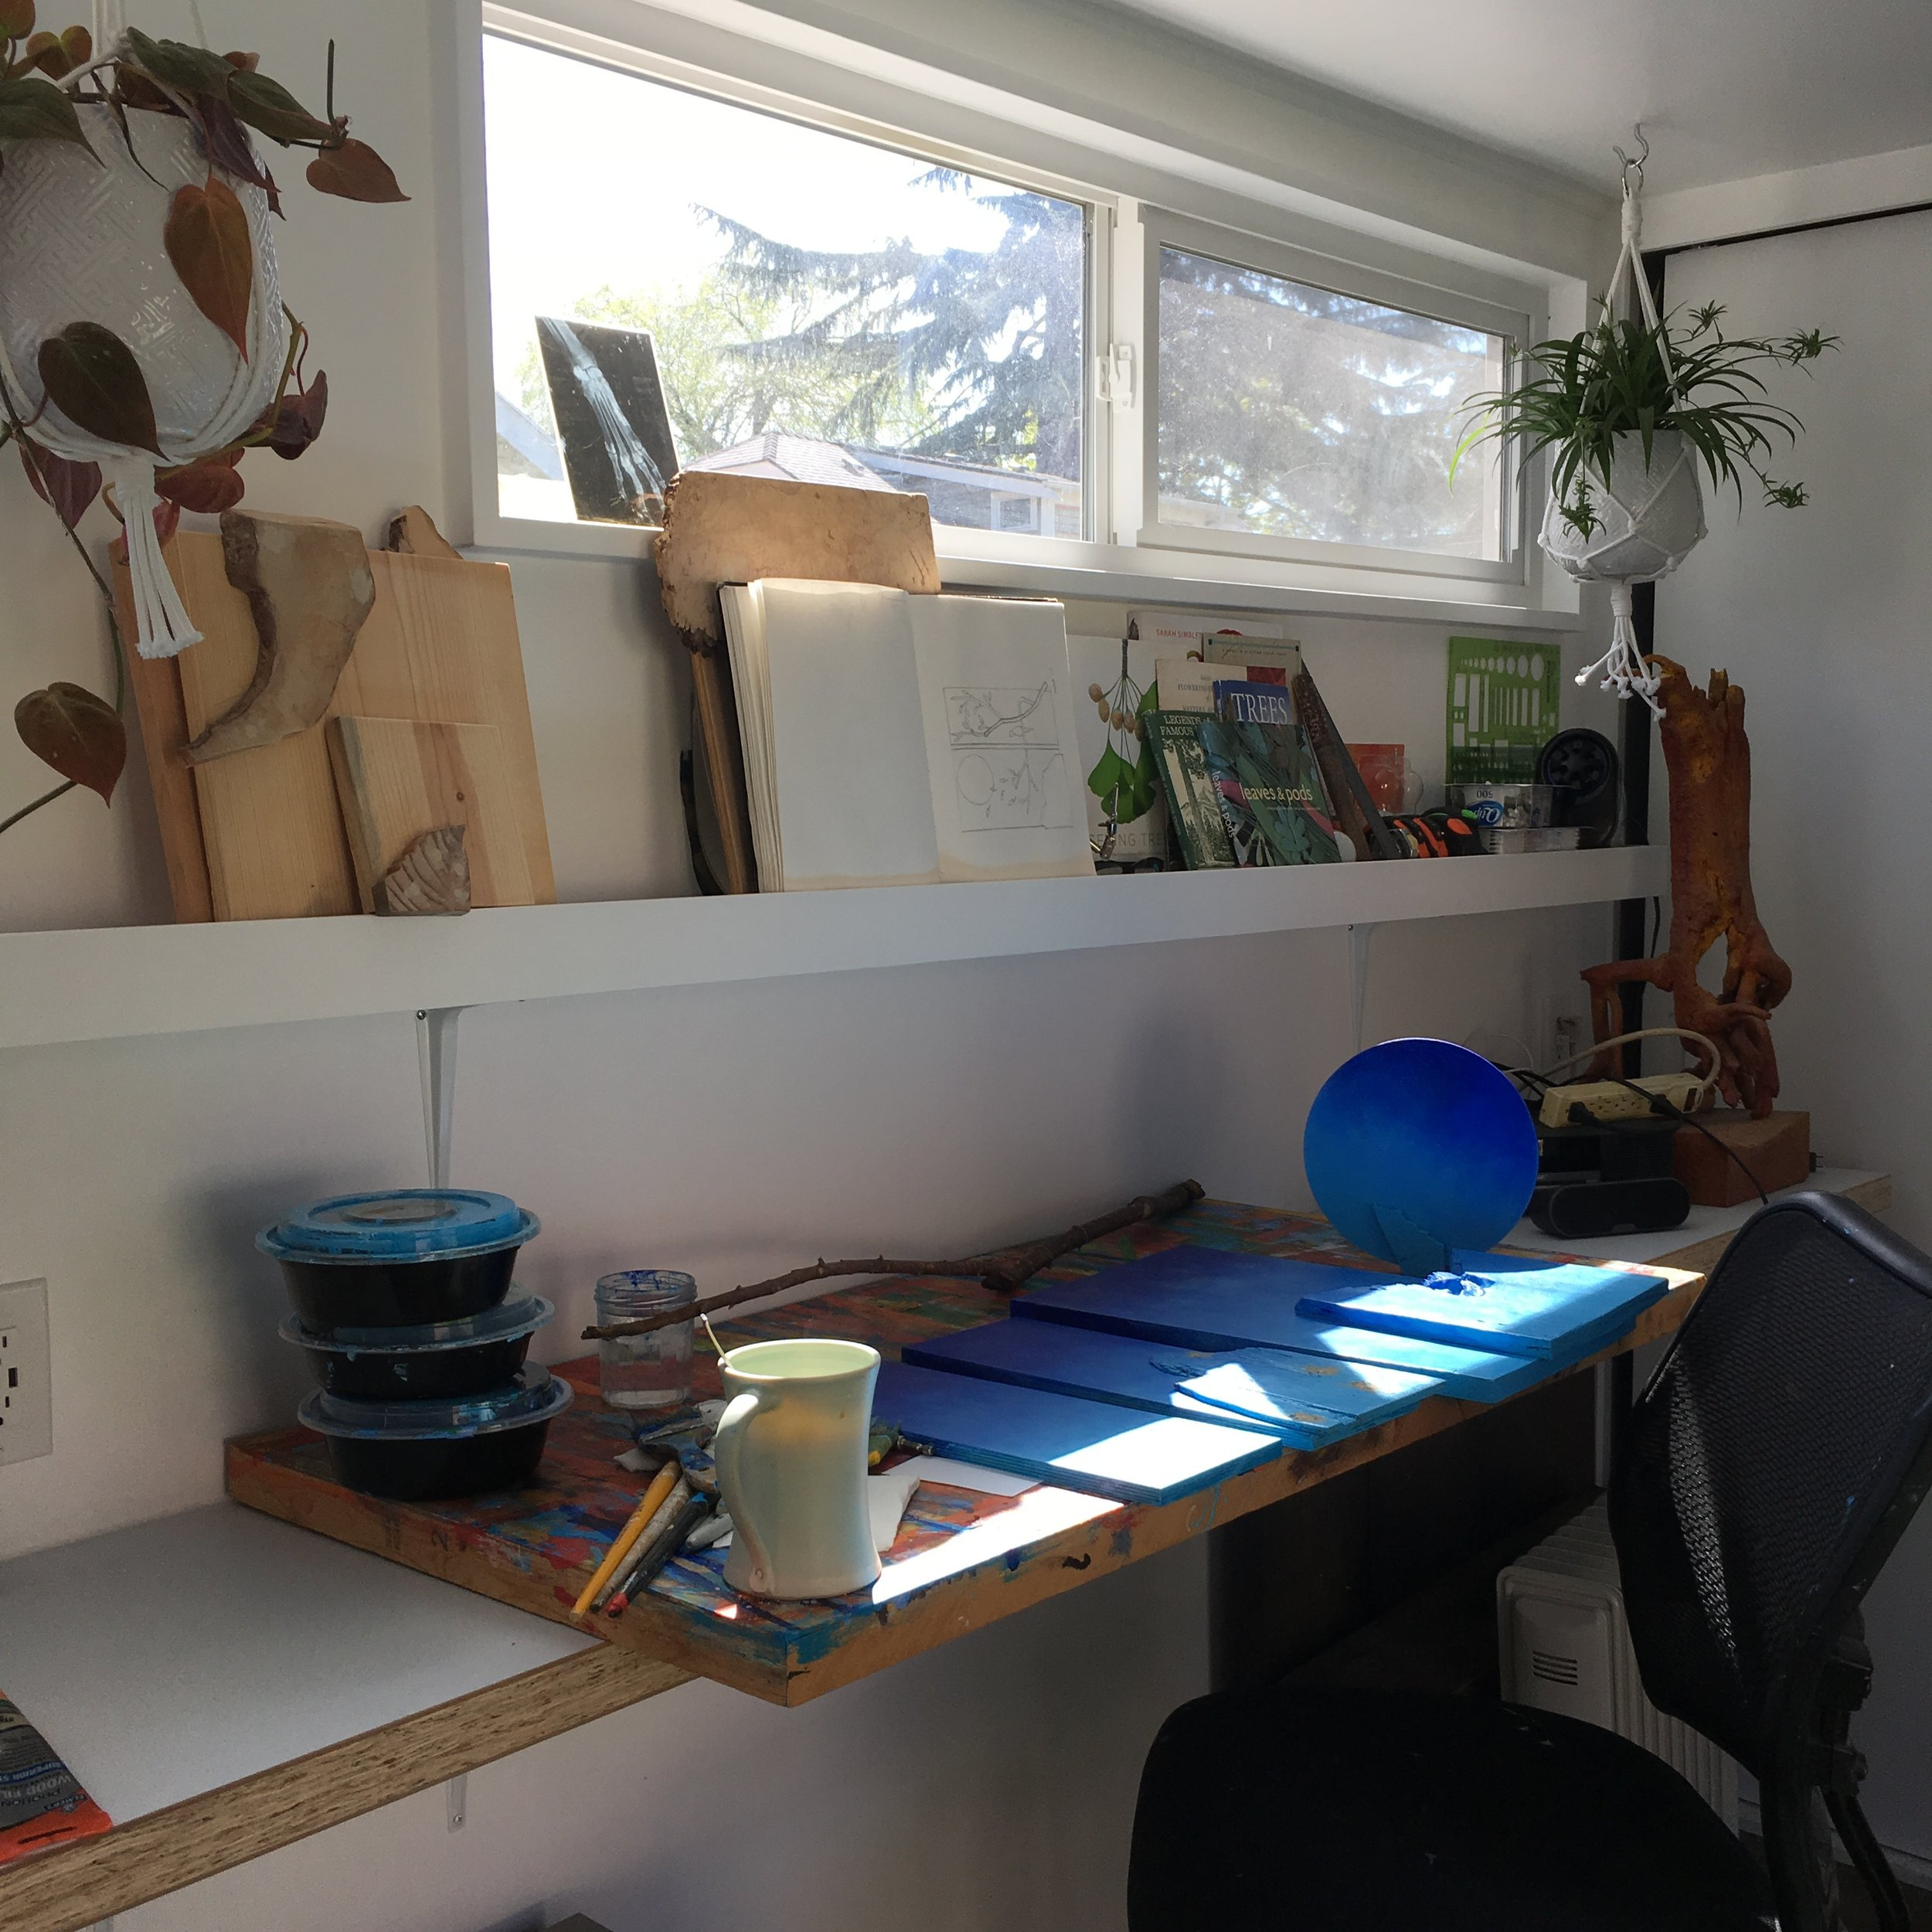 My beautiful studio, in a shipping container. A long-time dream come true with help from the amazing Daniel Goers. http://dgoers.com/